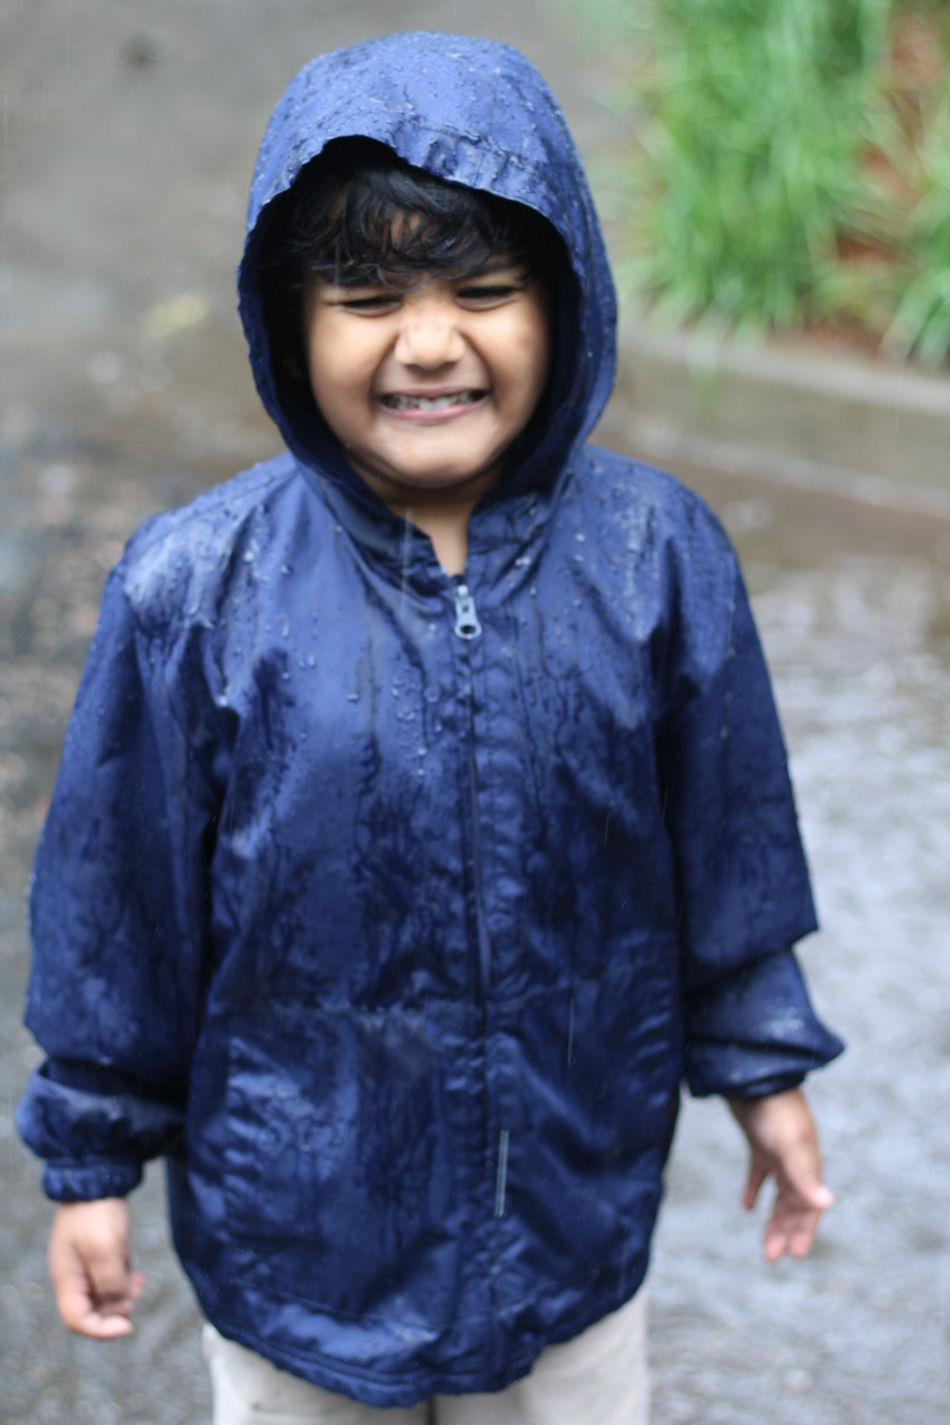 Boys Cheerful Childhood Close-up Day Focus On Foreground Front View Happiness Leisure Activity Lifestyles Looking At Camera Nature One Person Outdoors Portrait Real People Smiling Standing Warm Clothing Water